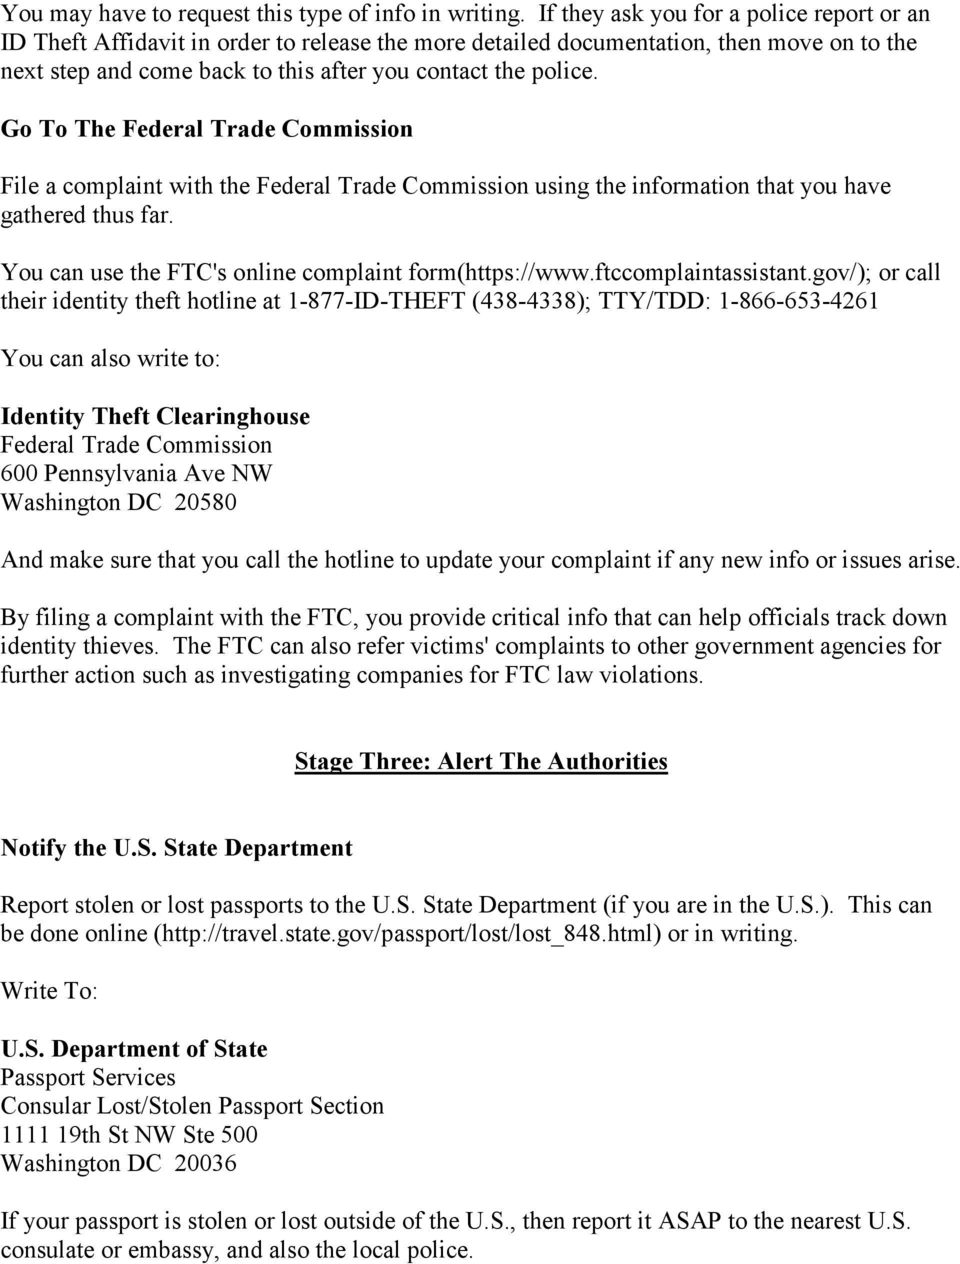 Go To The Federal Trade Commission File a complaint with the Federal Trade Commission using the information that you have gathered thus far. You can use the FTC's online complaint form(https://www.